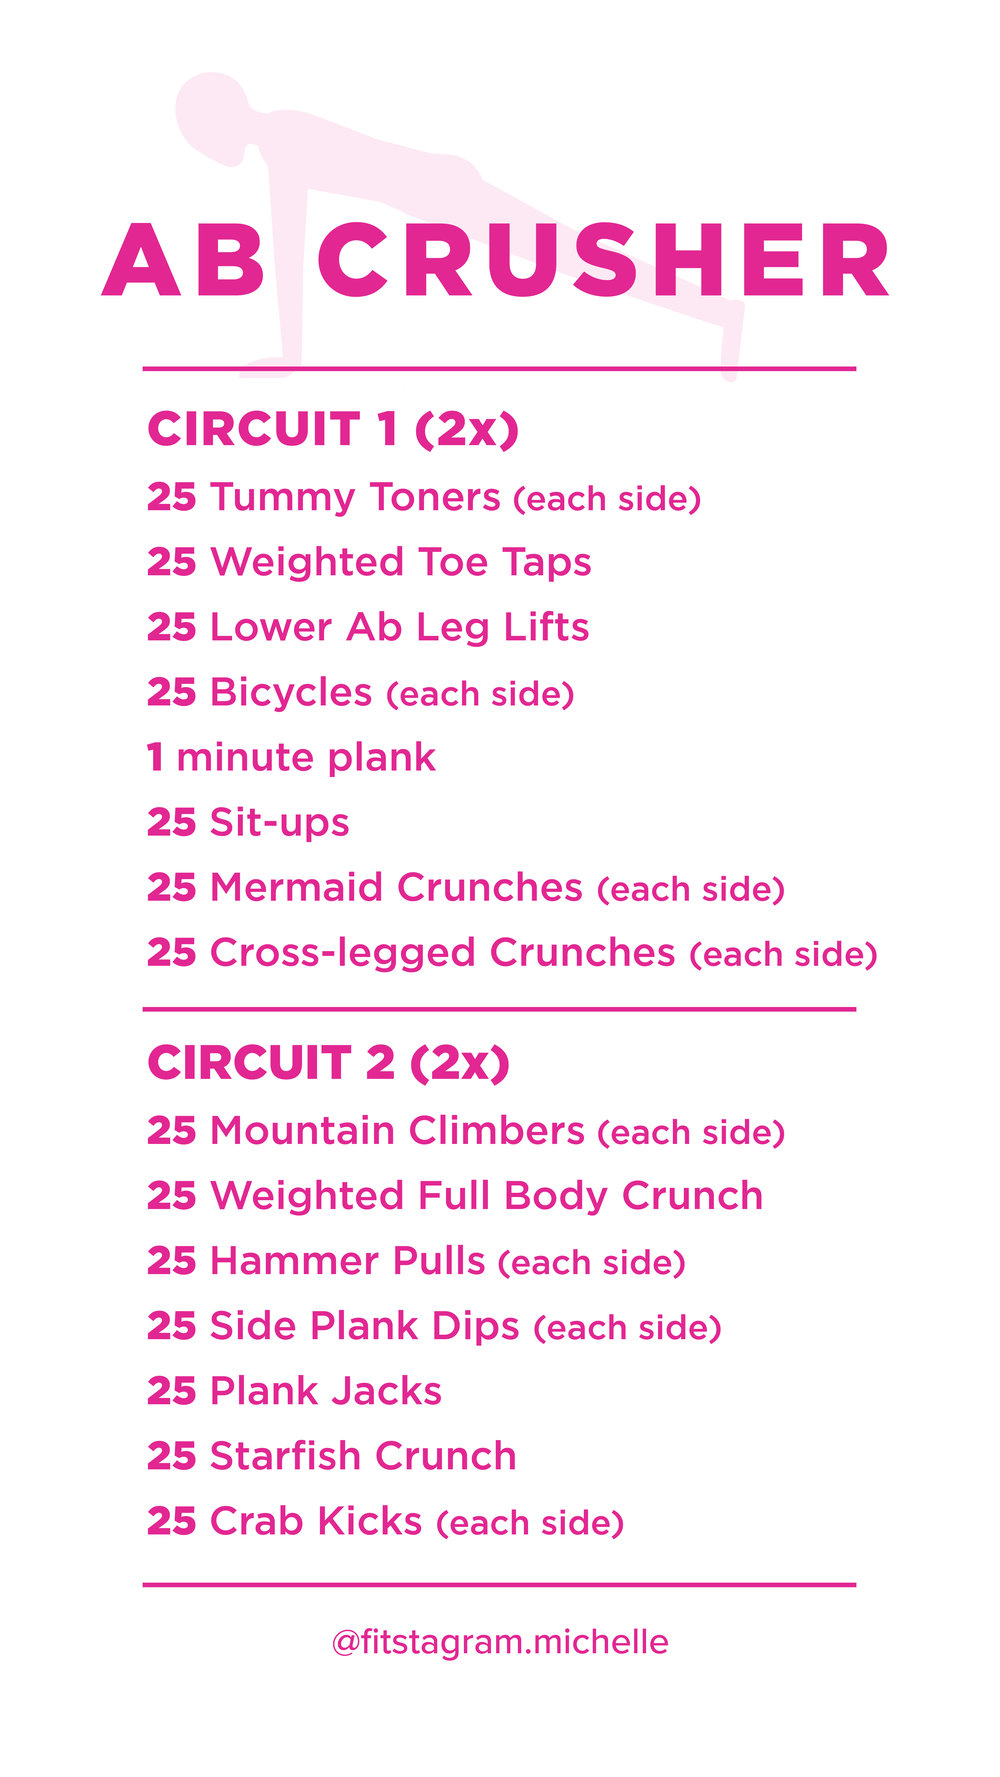 Ab Crusher Workout Guide for Instagram Story.